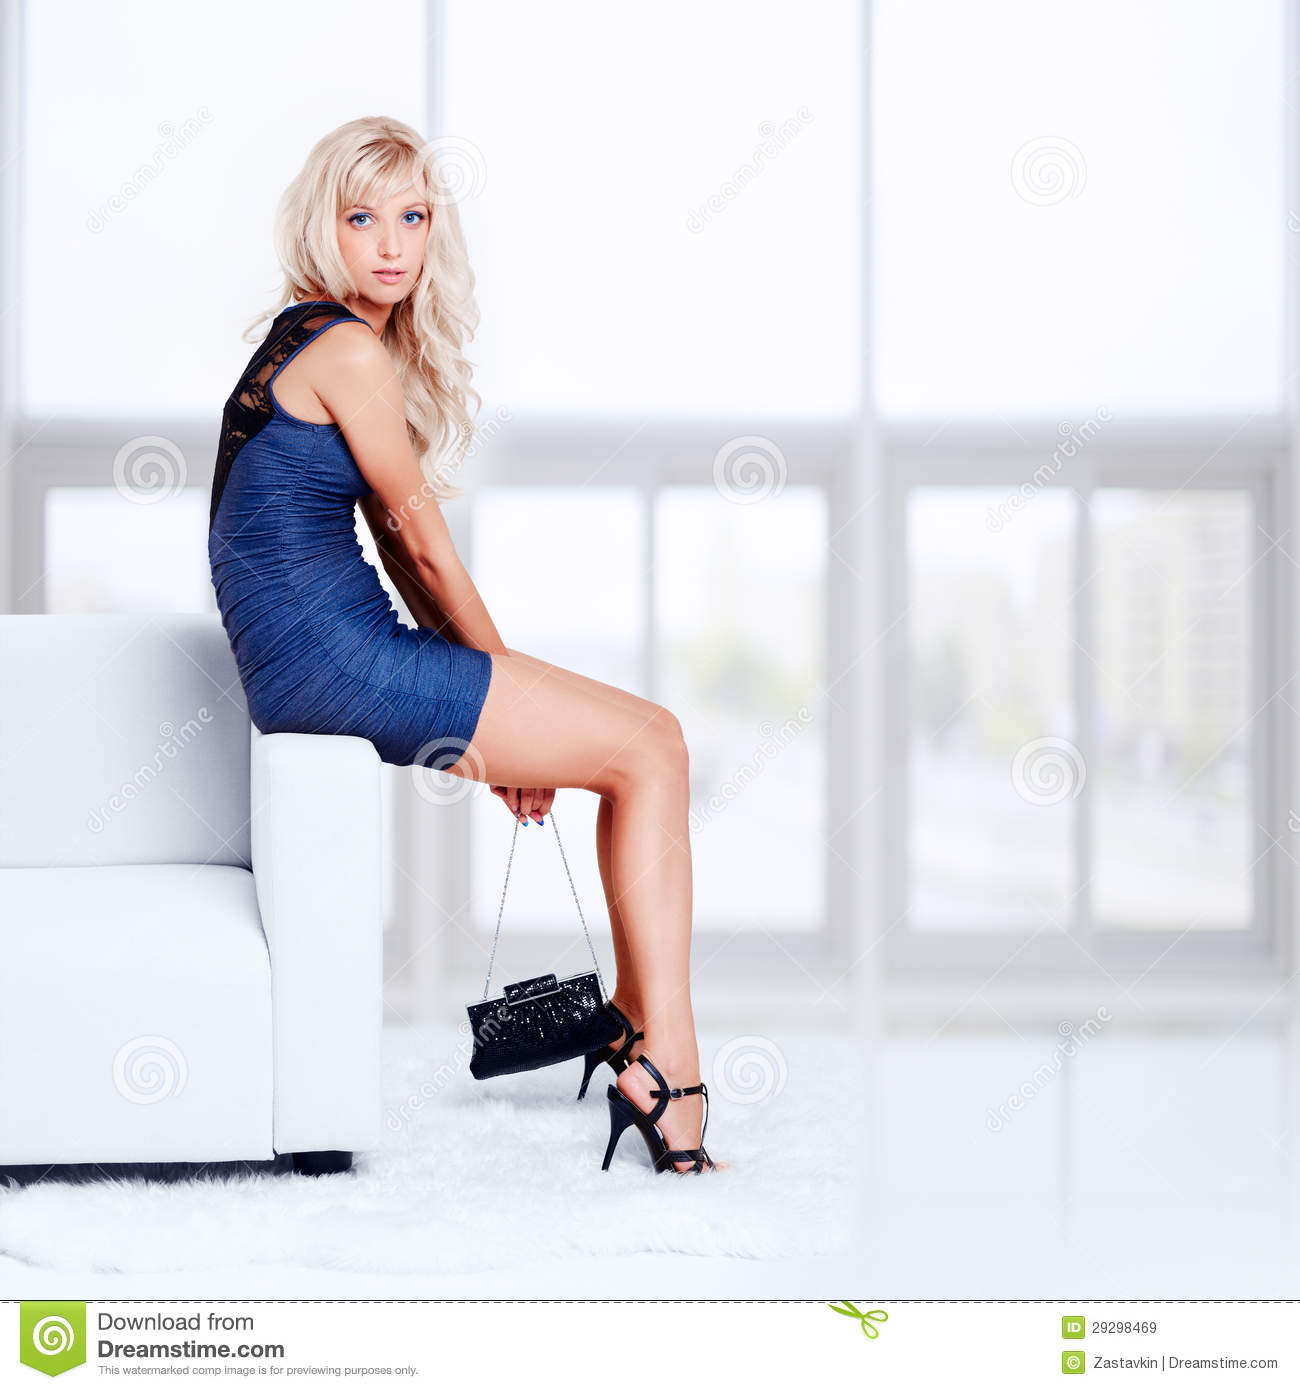 Free Sexmovie Blond Sofa Blond Girl On Sofa Royalty Free Stock Images - Image: 29298469